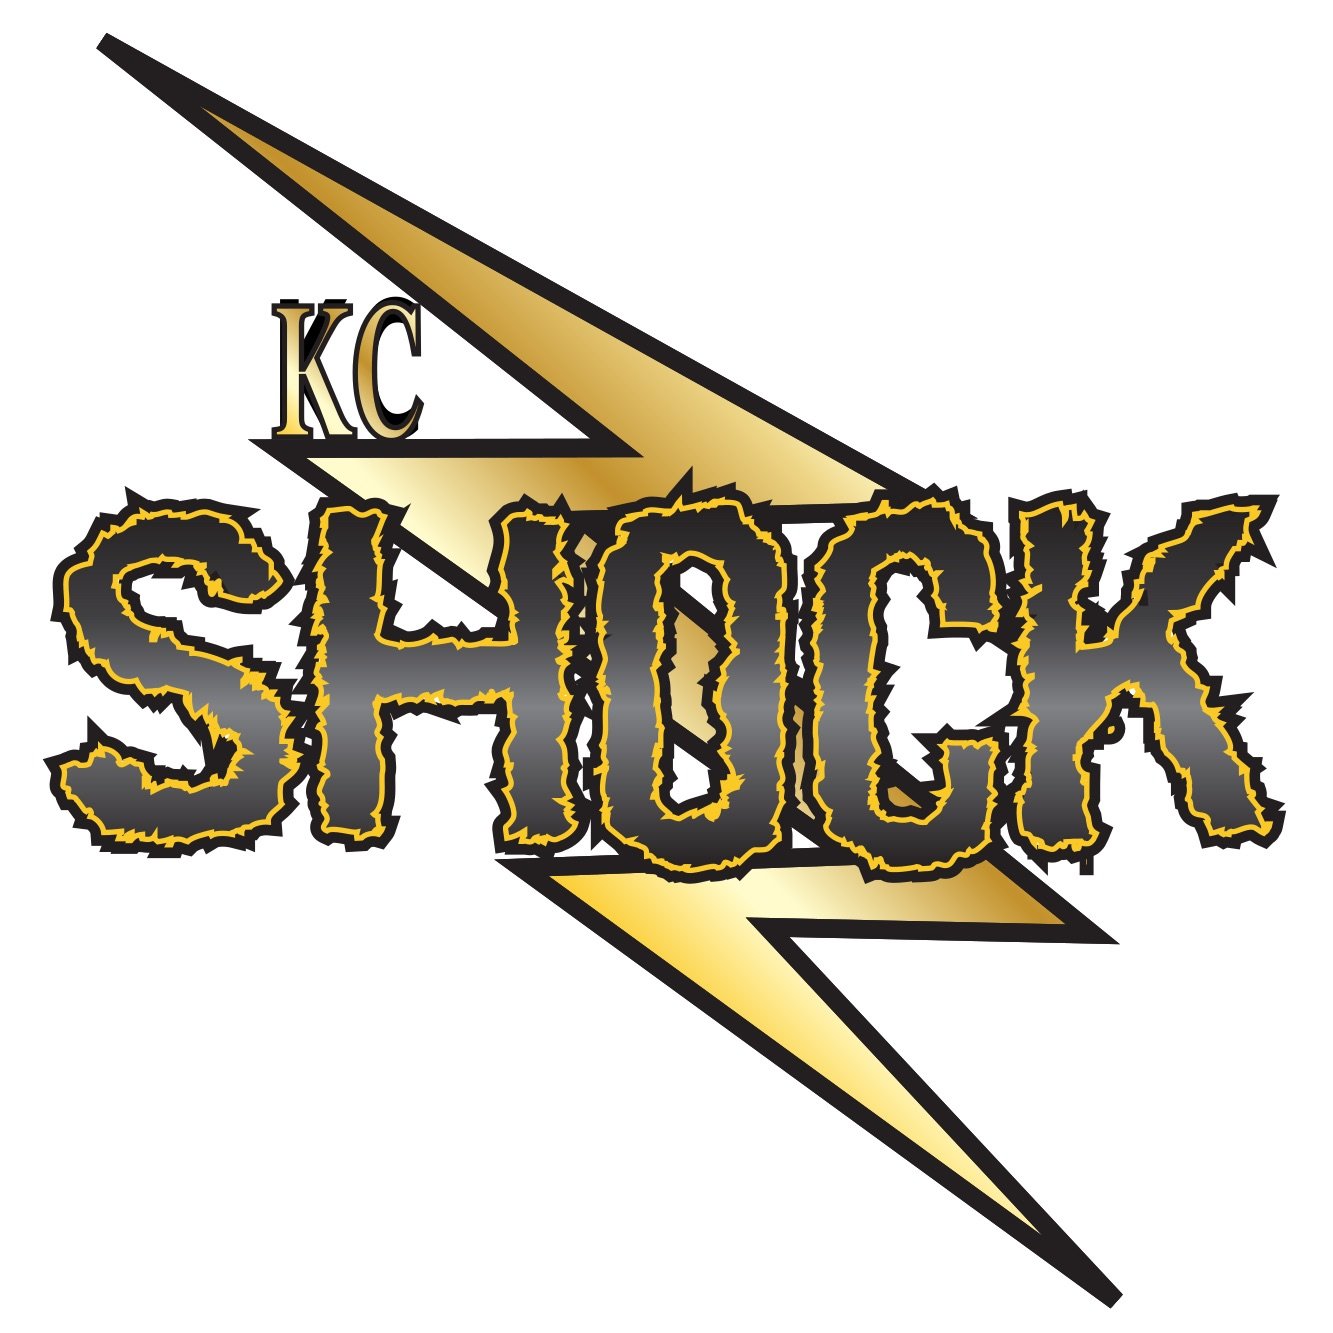 USSSA | Fastpitch Team: Kansas City Shock - Gold - Kansas